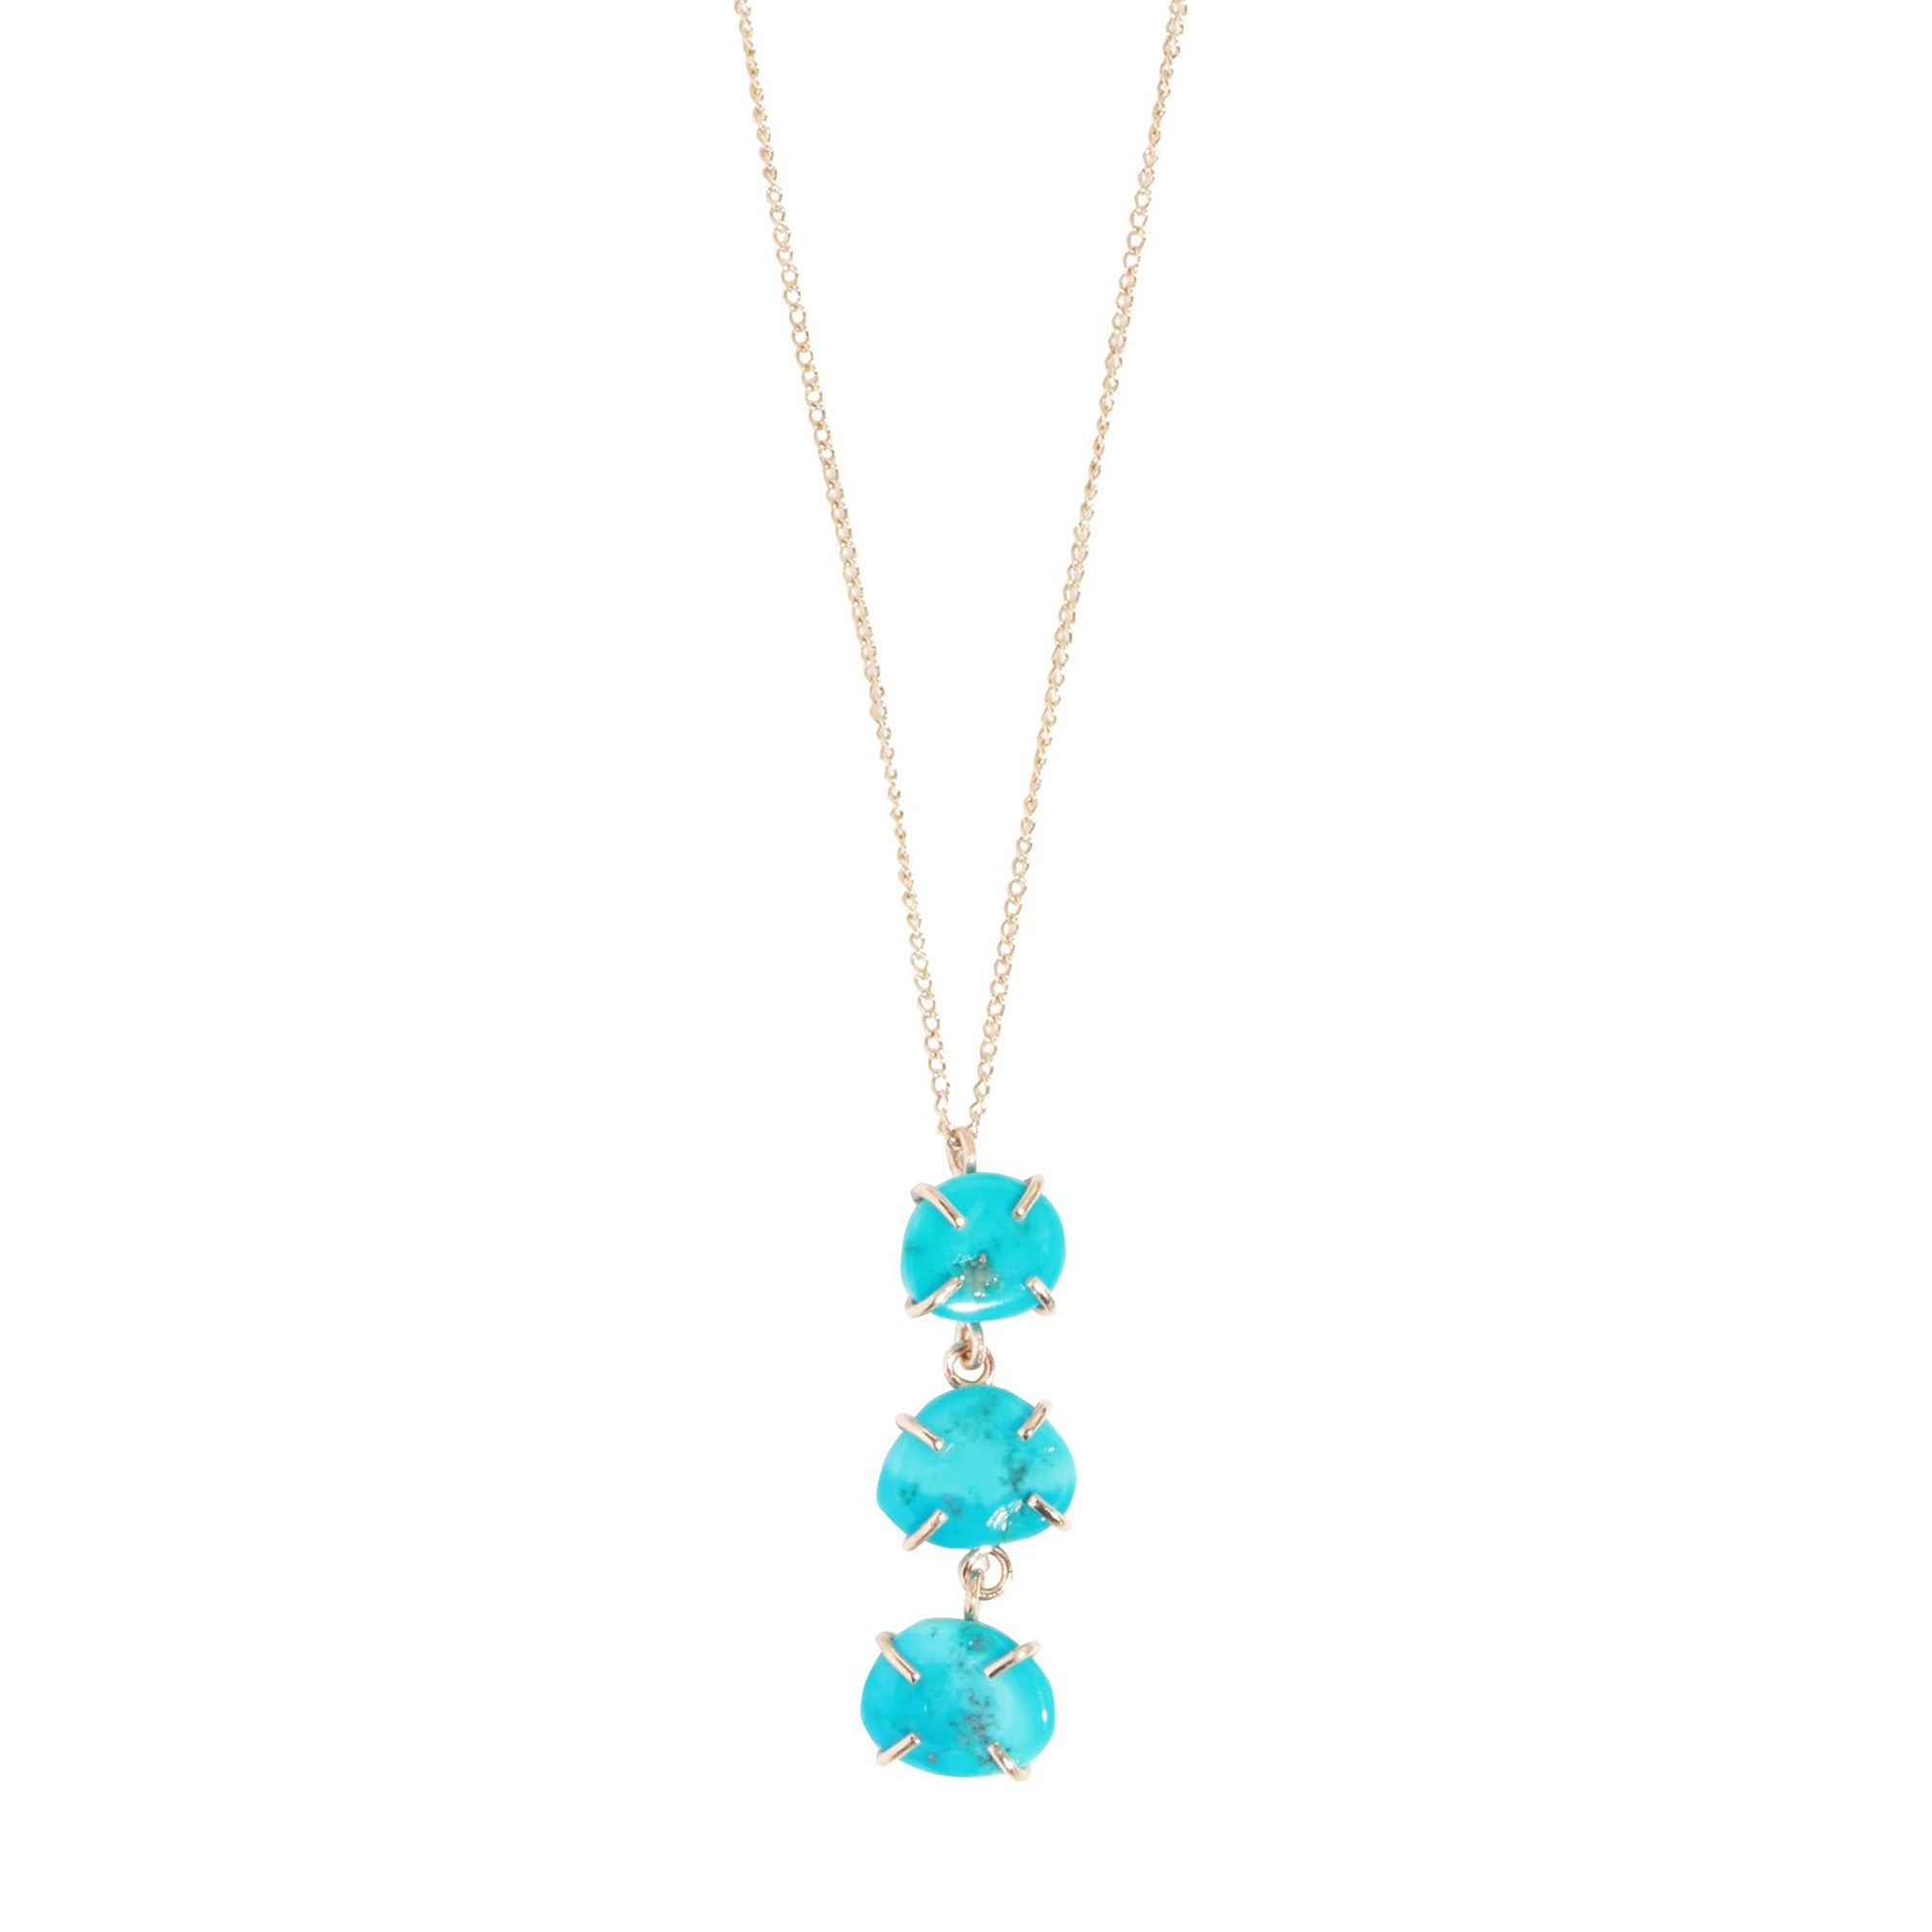 Melissa Joy Manning Three Drop Necklace - Turquoise - Necklaces - Broken English Jewelry